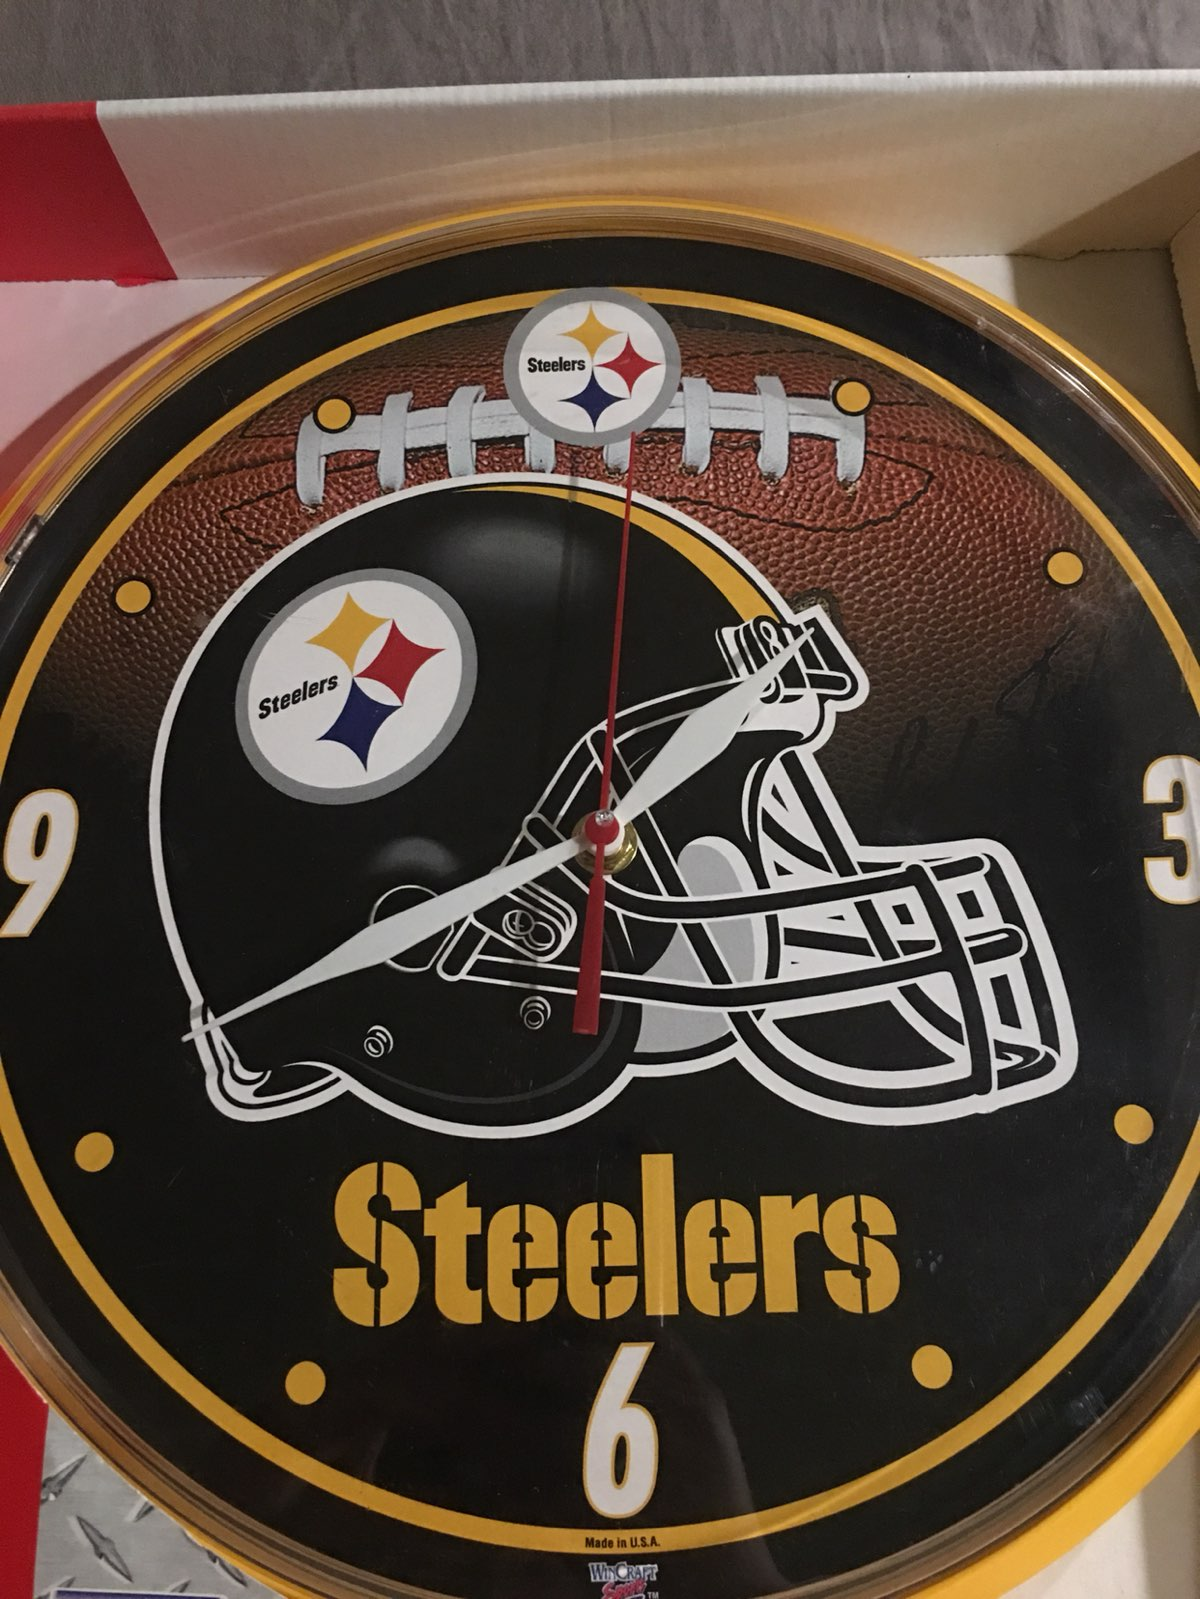 Steelers wall clock mercari buy sell things you love steelers wall clock amipublicfo Image collections